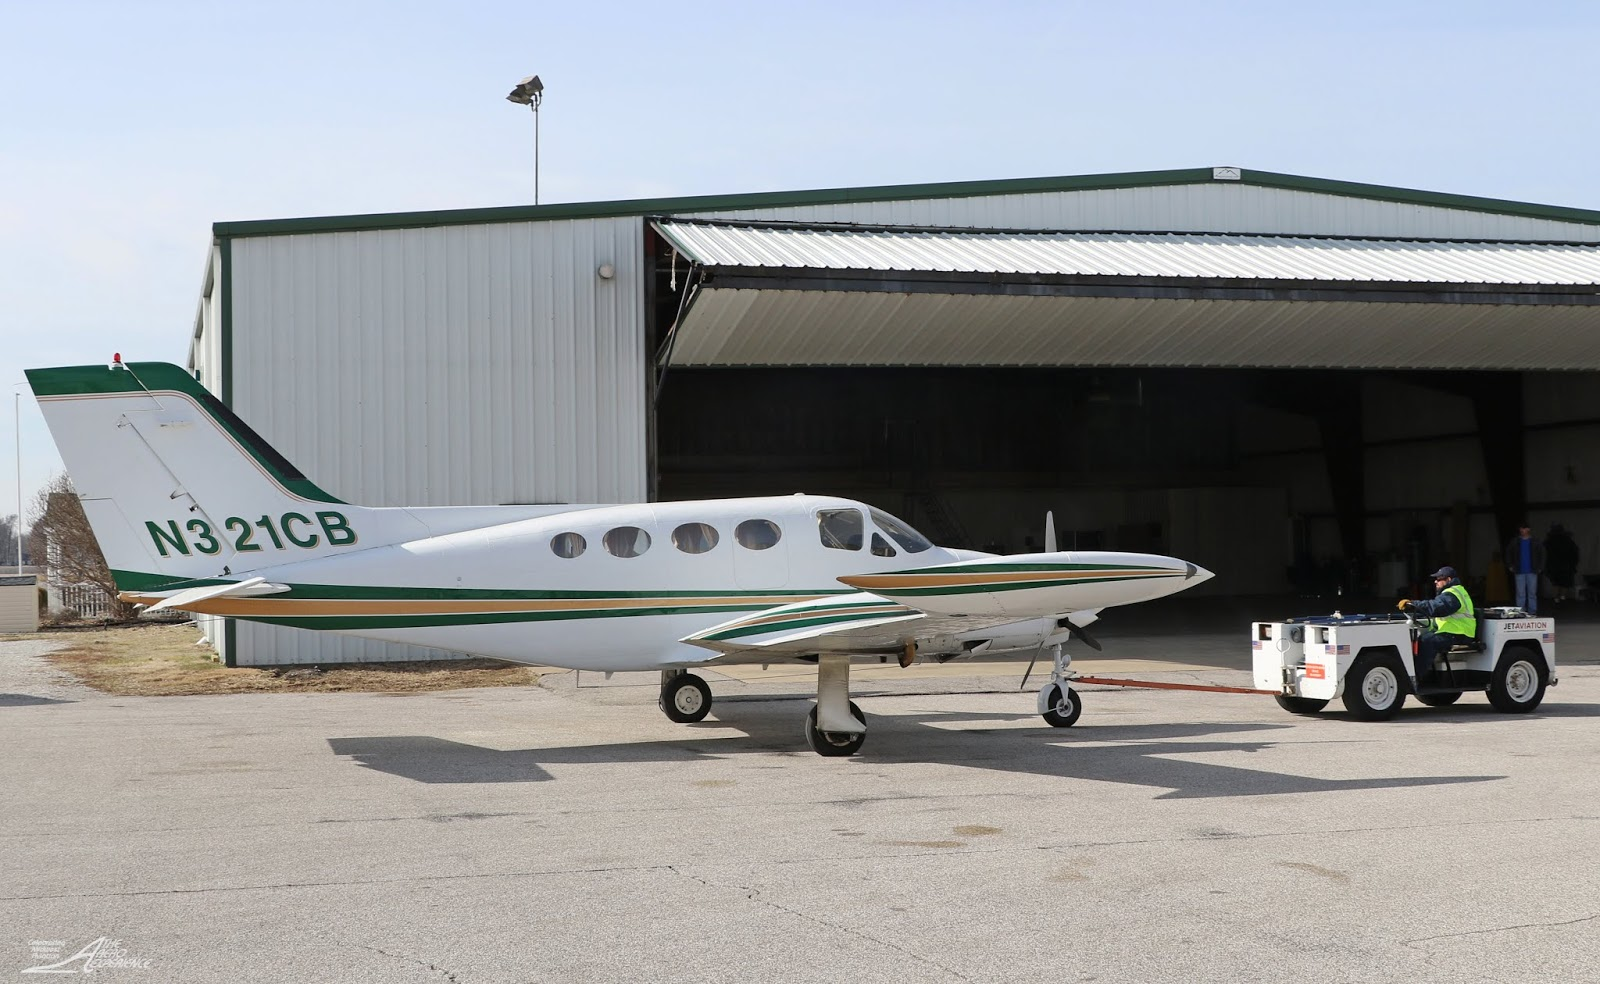 BIG RIVER AVIATION SETTLES INTO LARGER FACILITY: A DAY IN